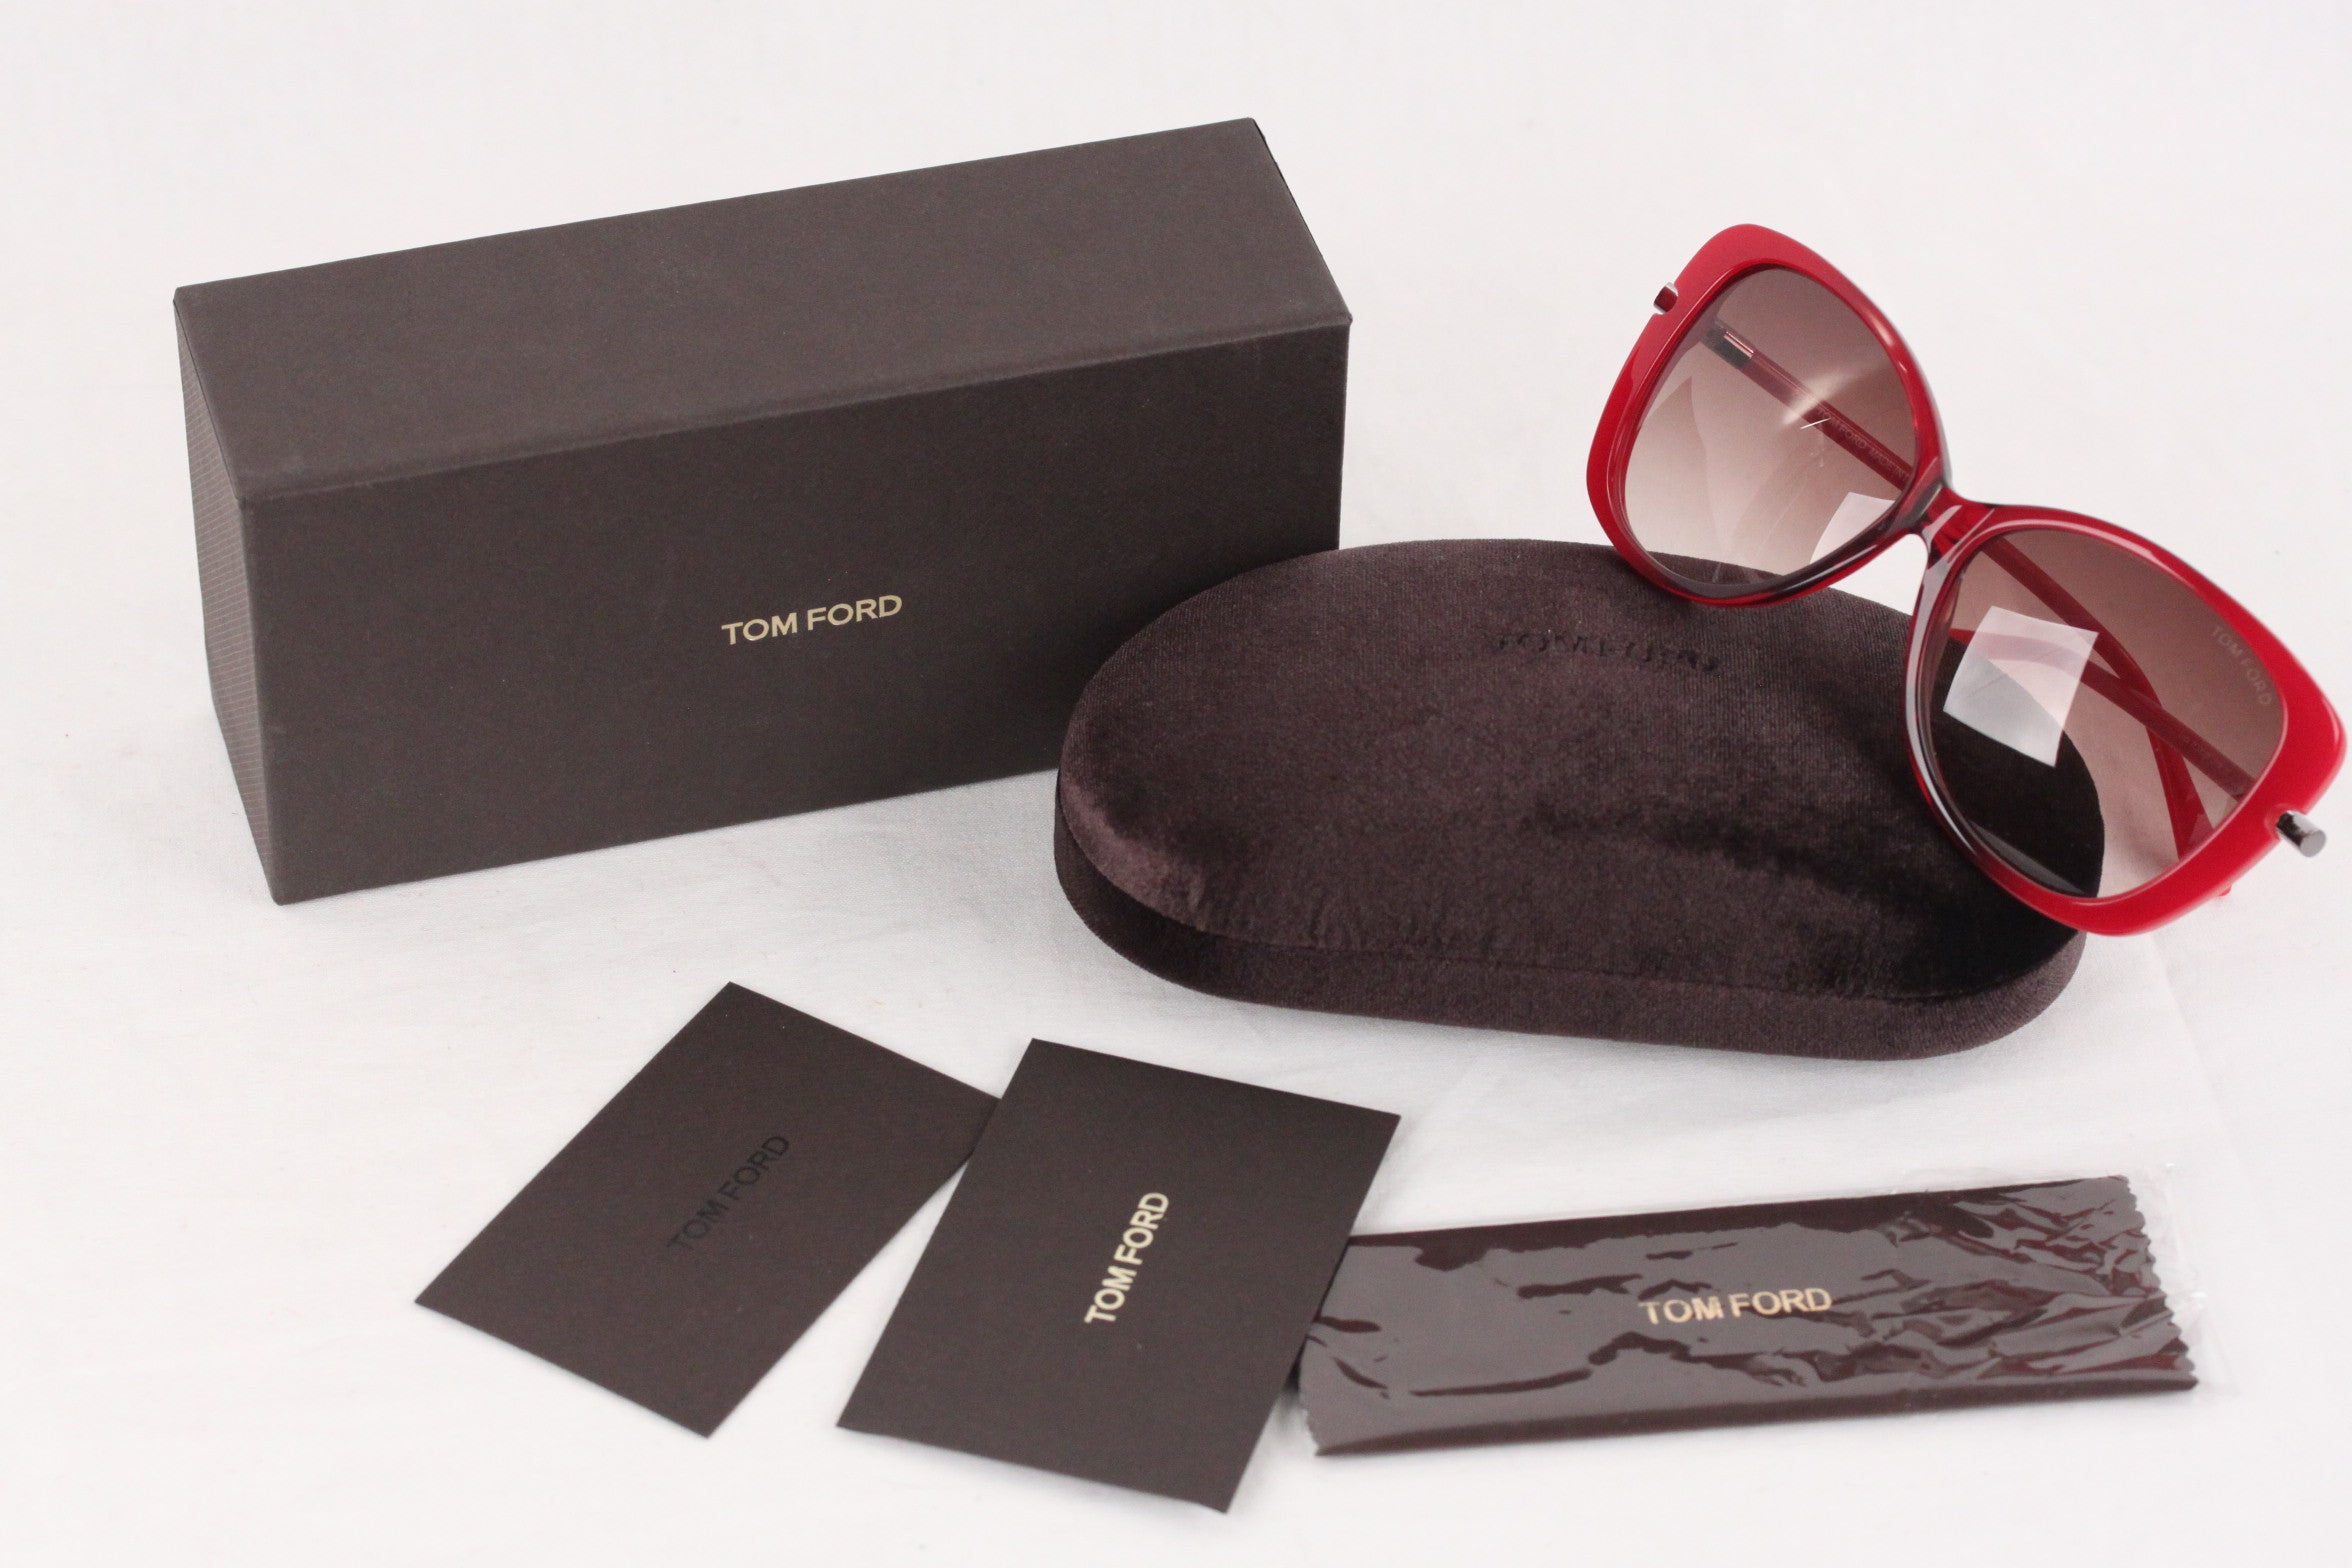 86e0475b3ad TOM FORD Eyewear Red LINDA TF 324 68F 59mm Butterfly SUNGLASSES For Sale at  1stdibs